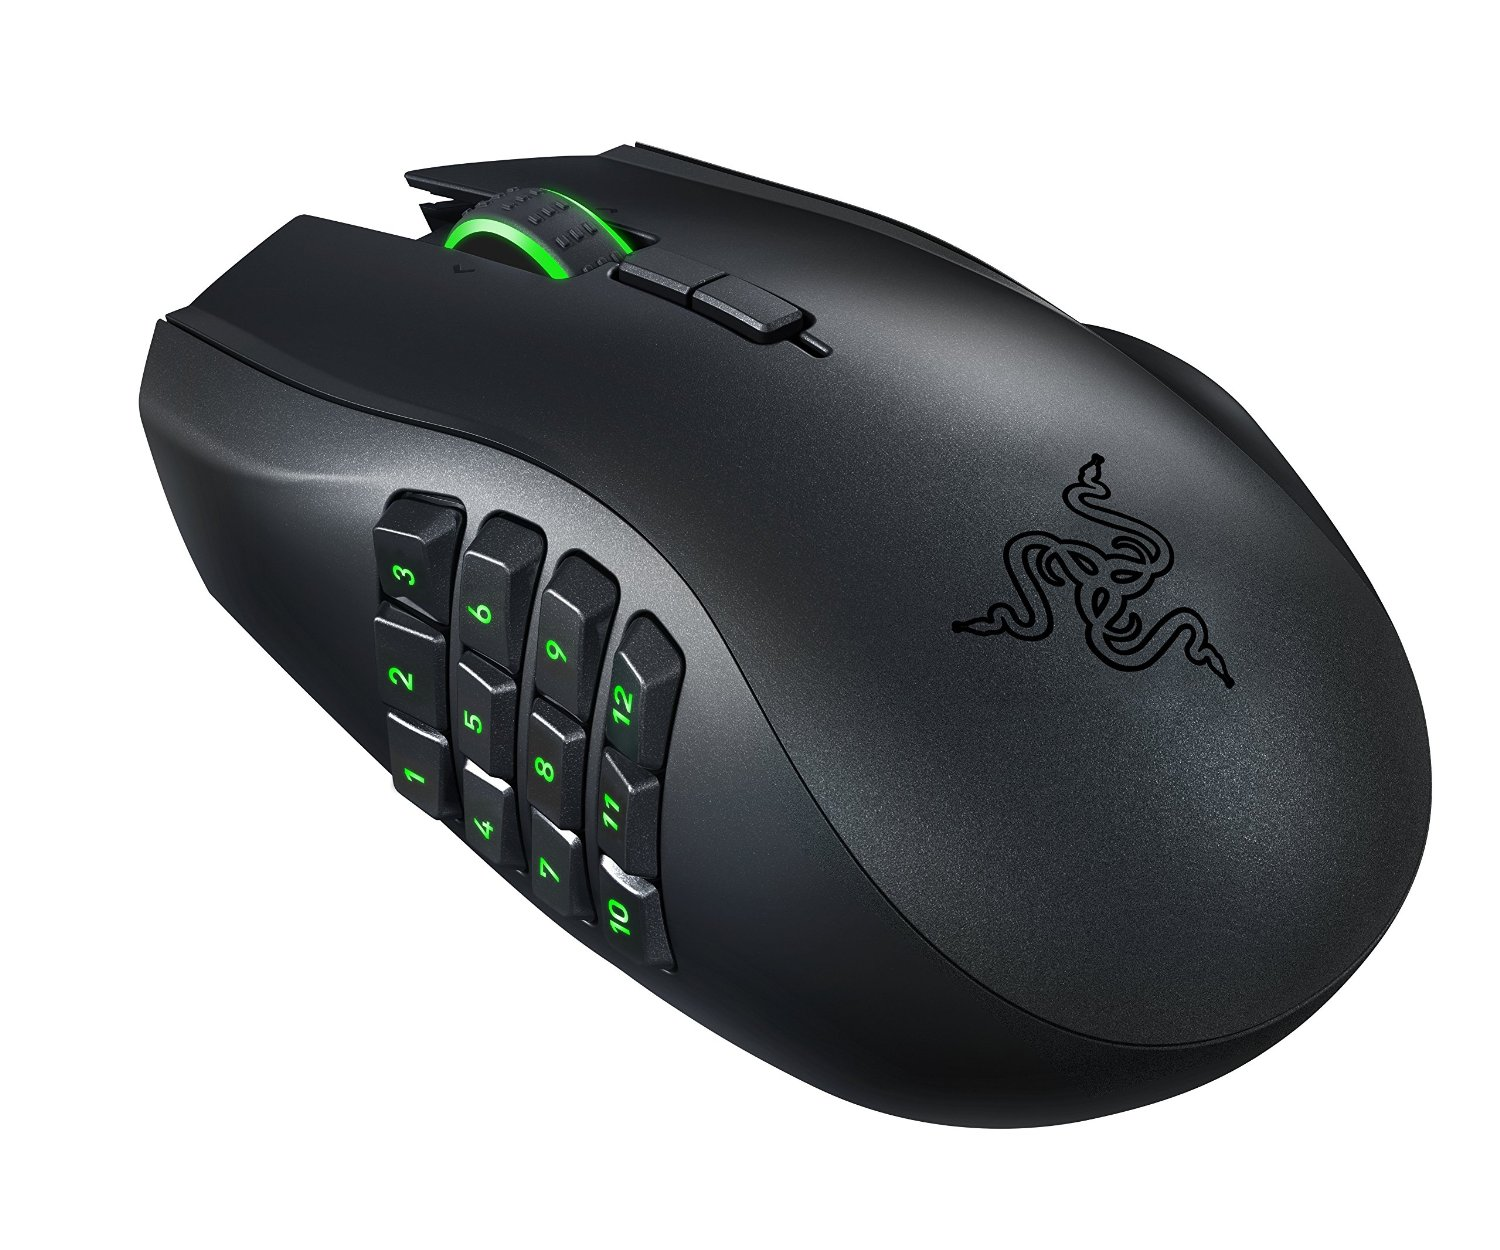 Razer Naga Epic Chroma Multi-Color Wireless MMO Gaming Mouse with 19 Buttons and 8200 dpi (RZ01-01230100-R3U1) by Razer